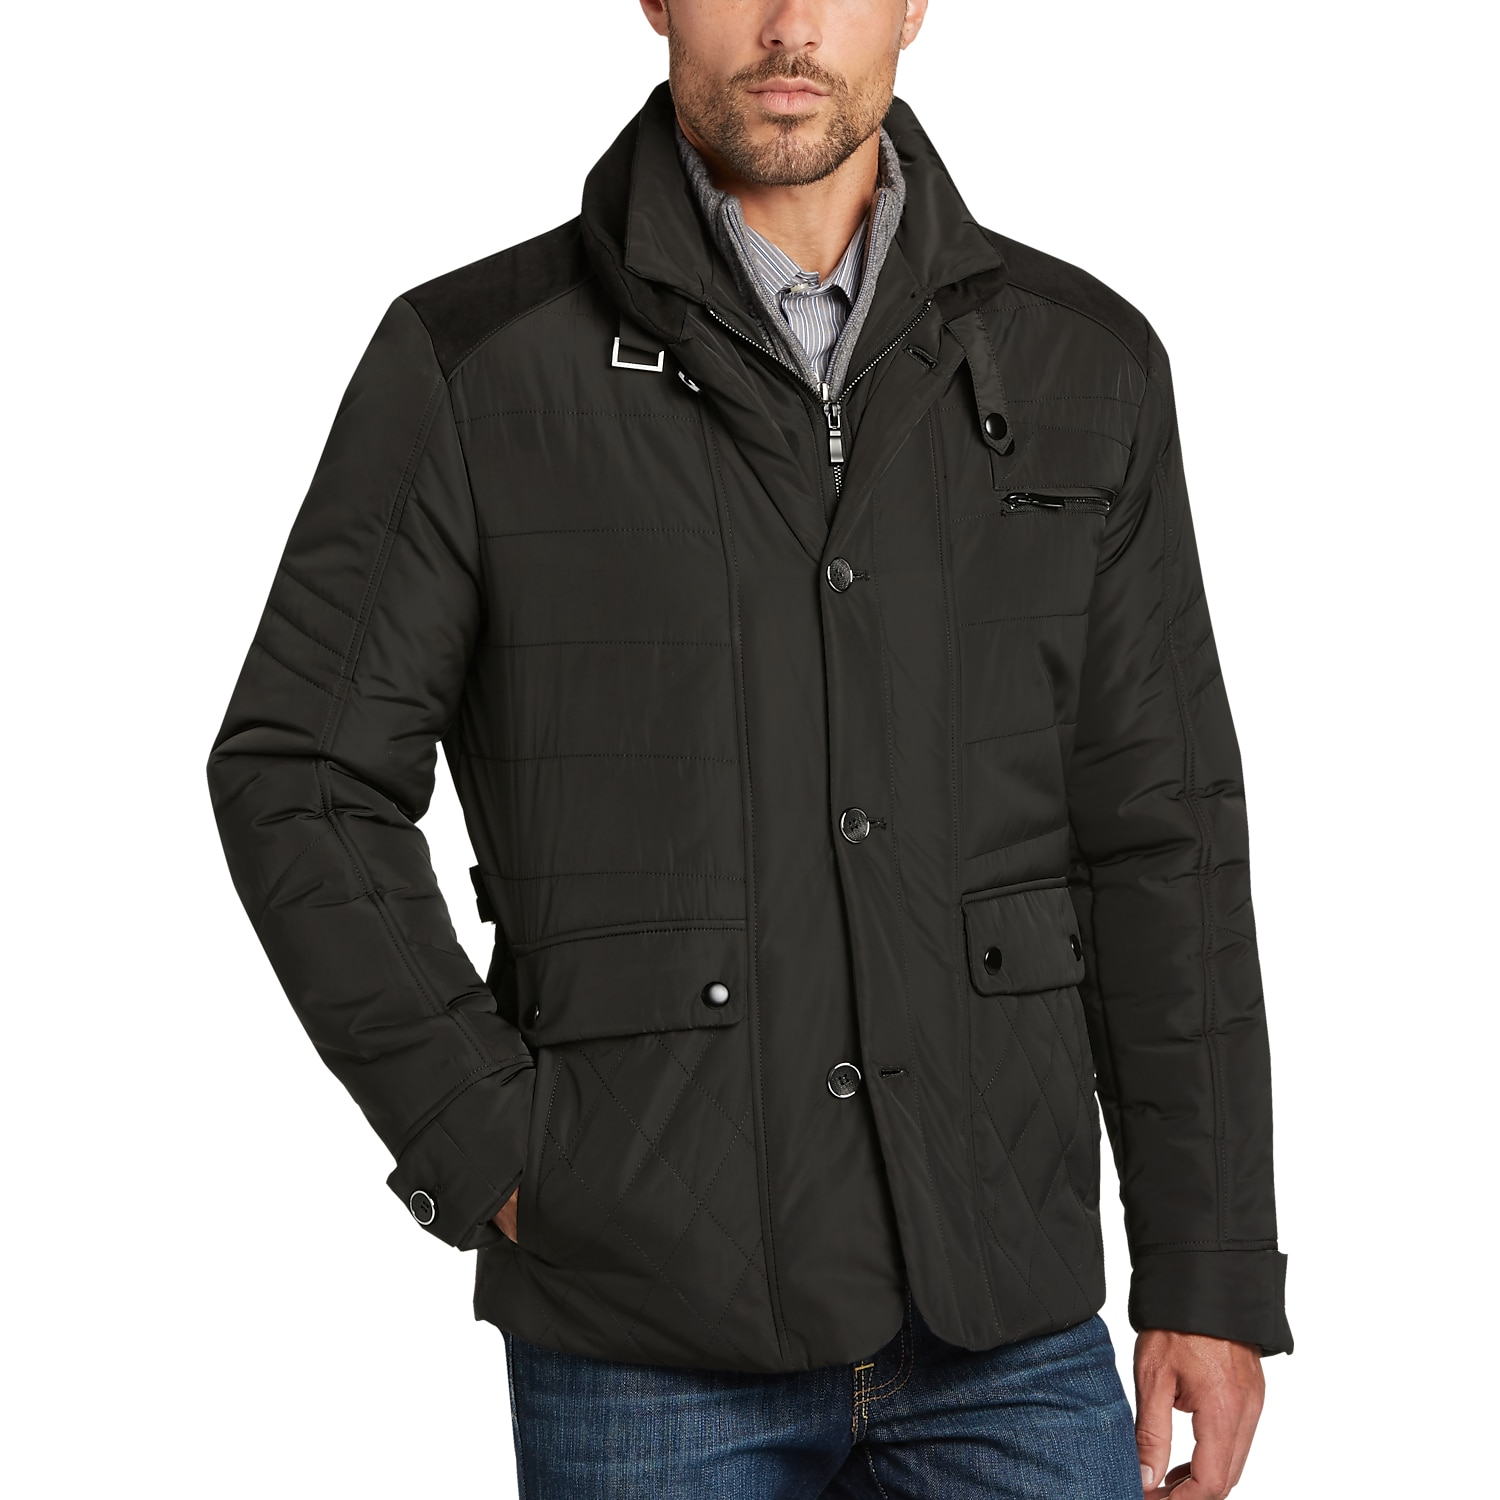 Mens Casual Jackets. Outerwear comes in a variety of different styles and designs to meet his needs. Men's casual jackets allow him to show off his own personality .